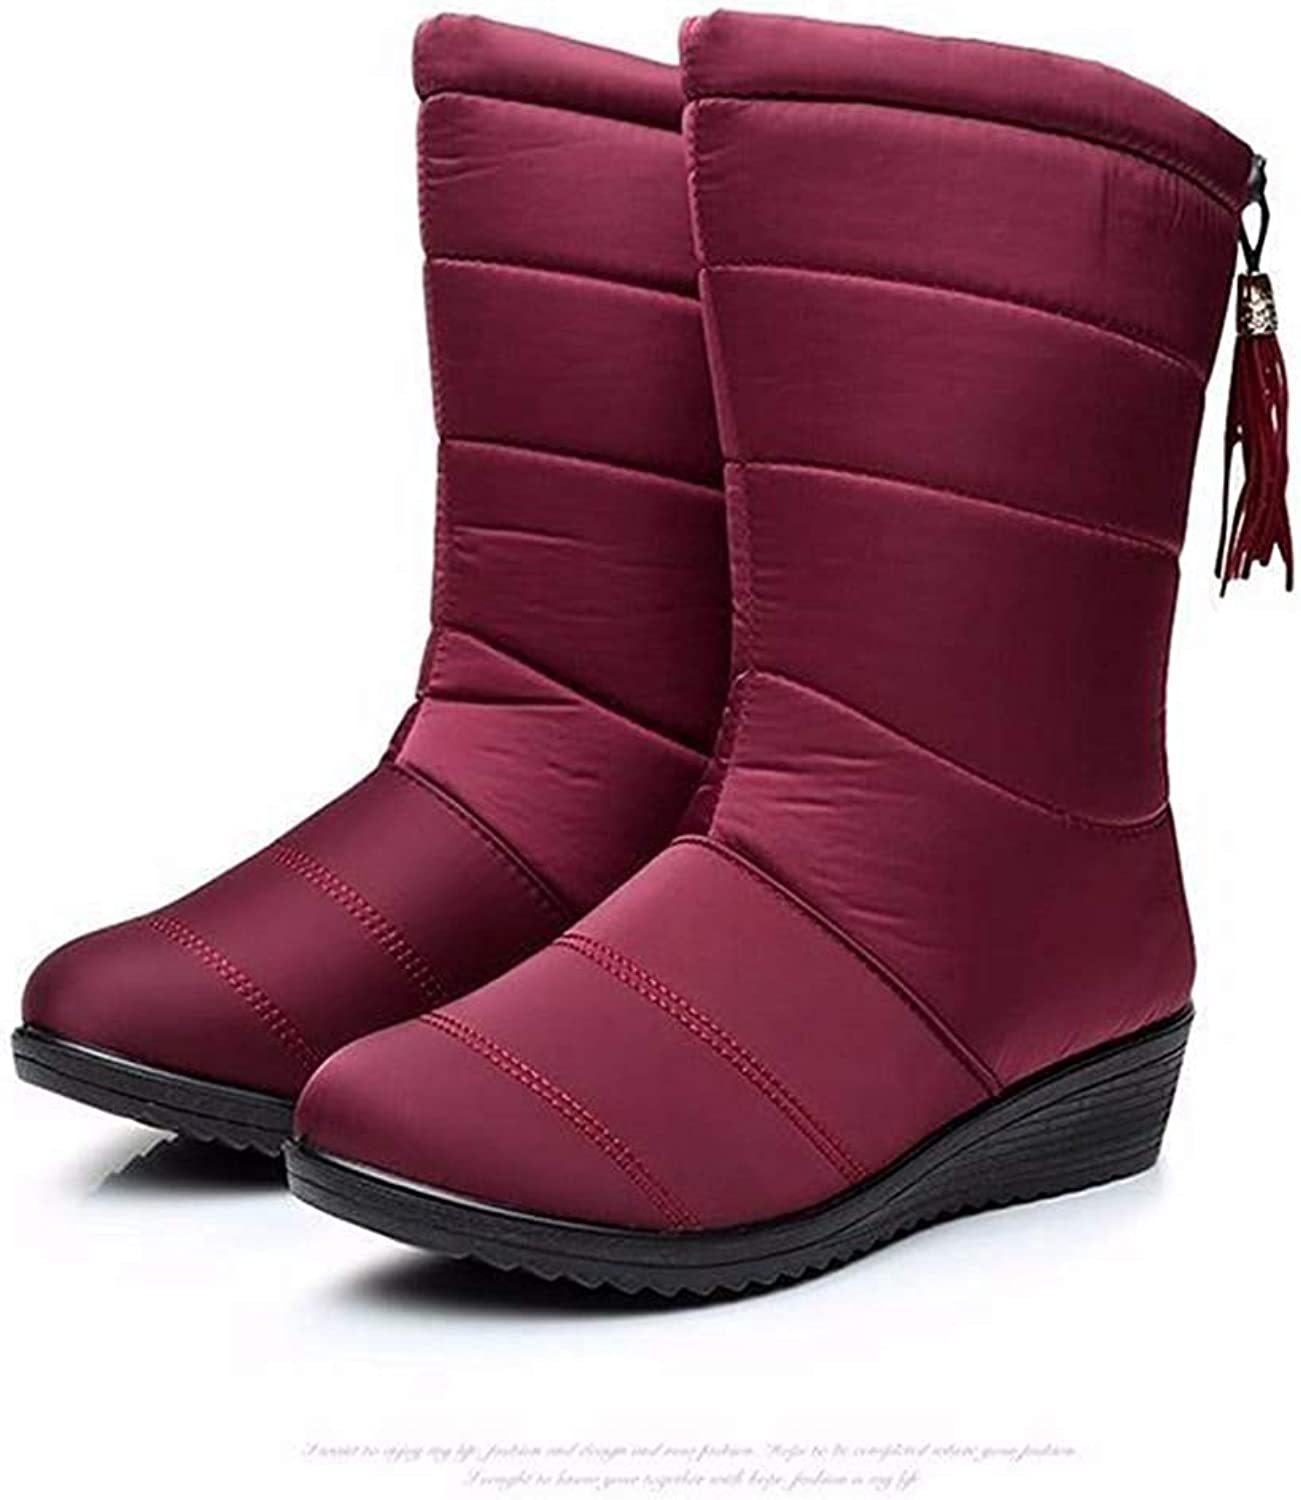 Gcanwea Female Down shoes Winter Snow Ankle Boots Women Waterproof Warm Girls Mid Calf Boots Ladies Soft Warm Fur shoes Easy to Match to Wear with Dress for Girls for Woman Black 5 M US Boots